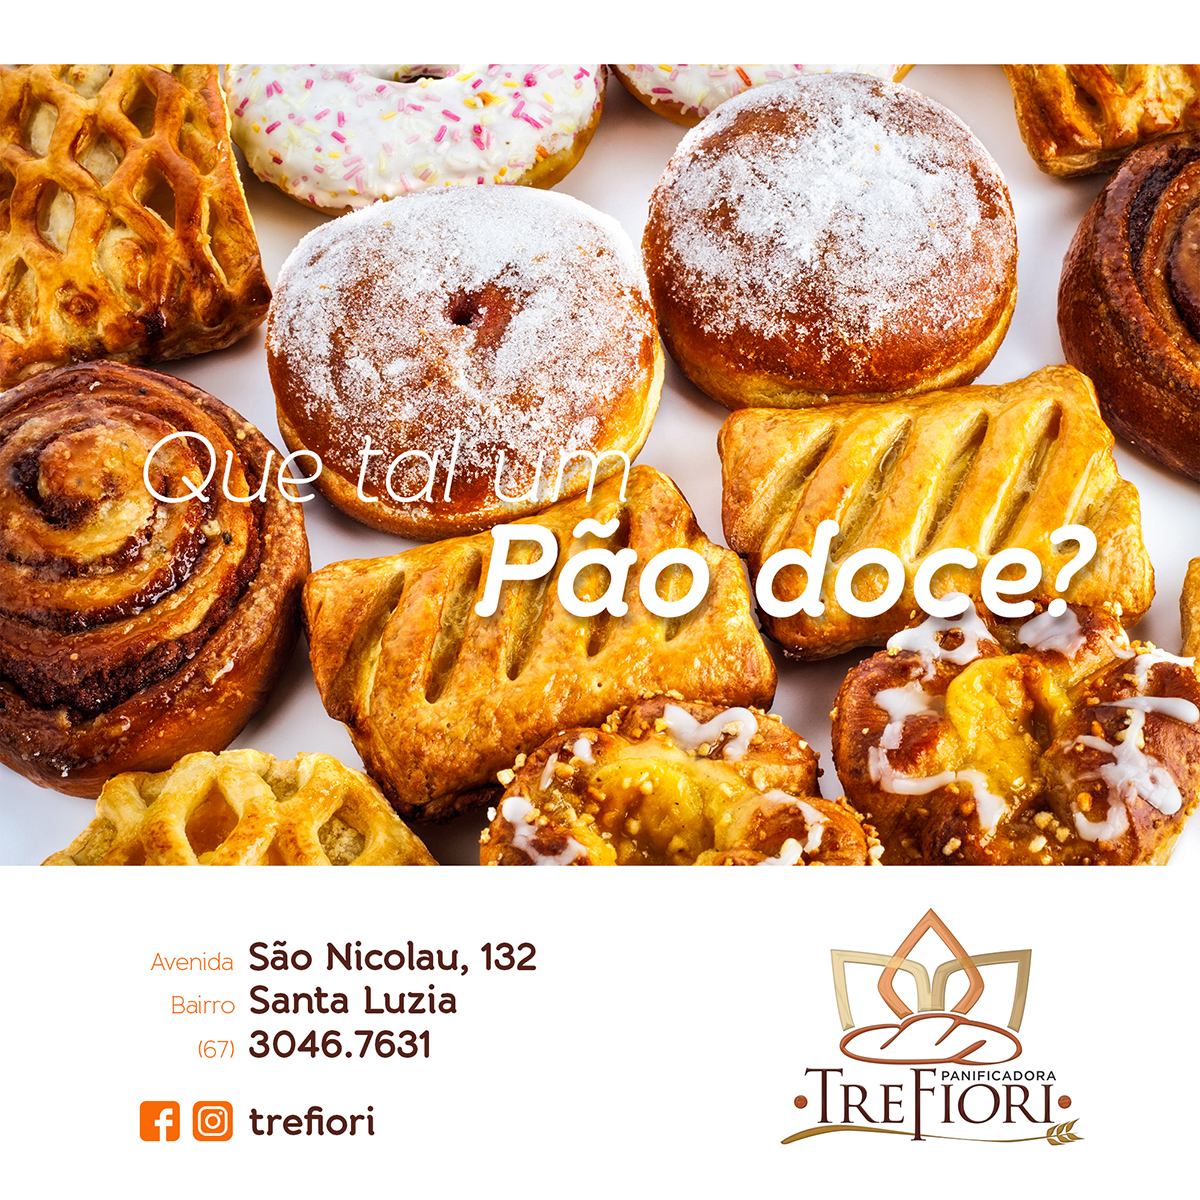 Post-Paes-doces-01